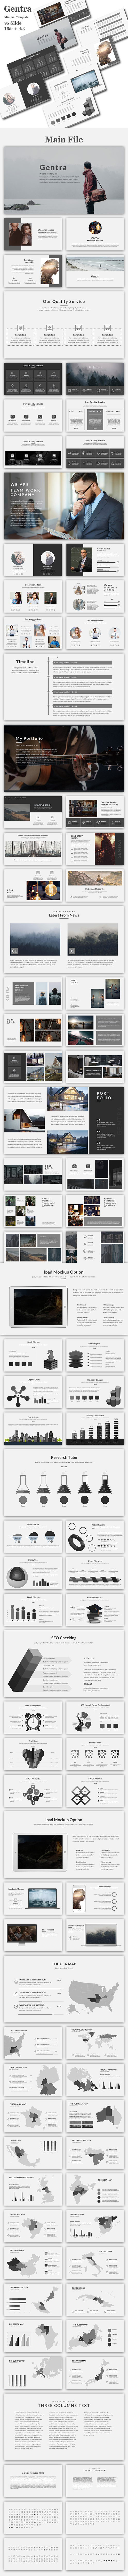 Gentra Minimal Google Slide Template - Google Slides Presentation Templates